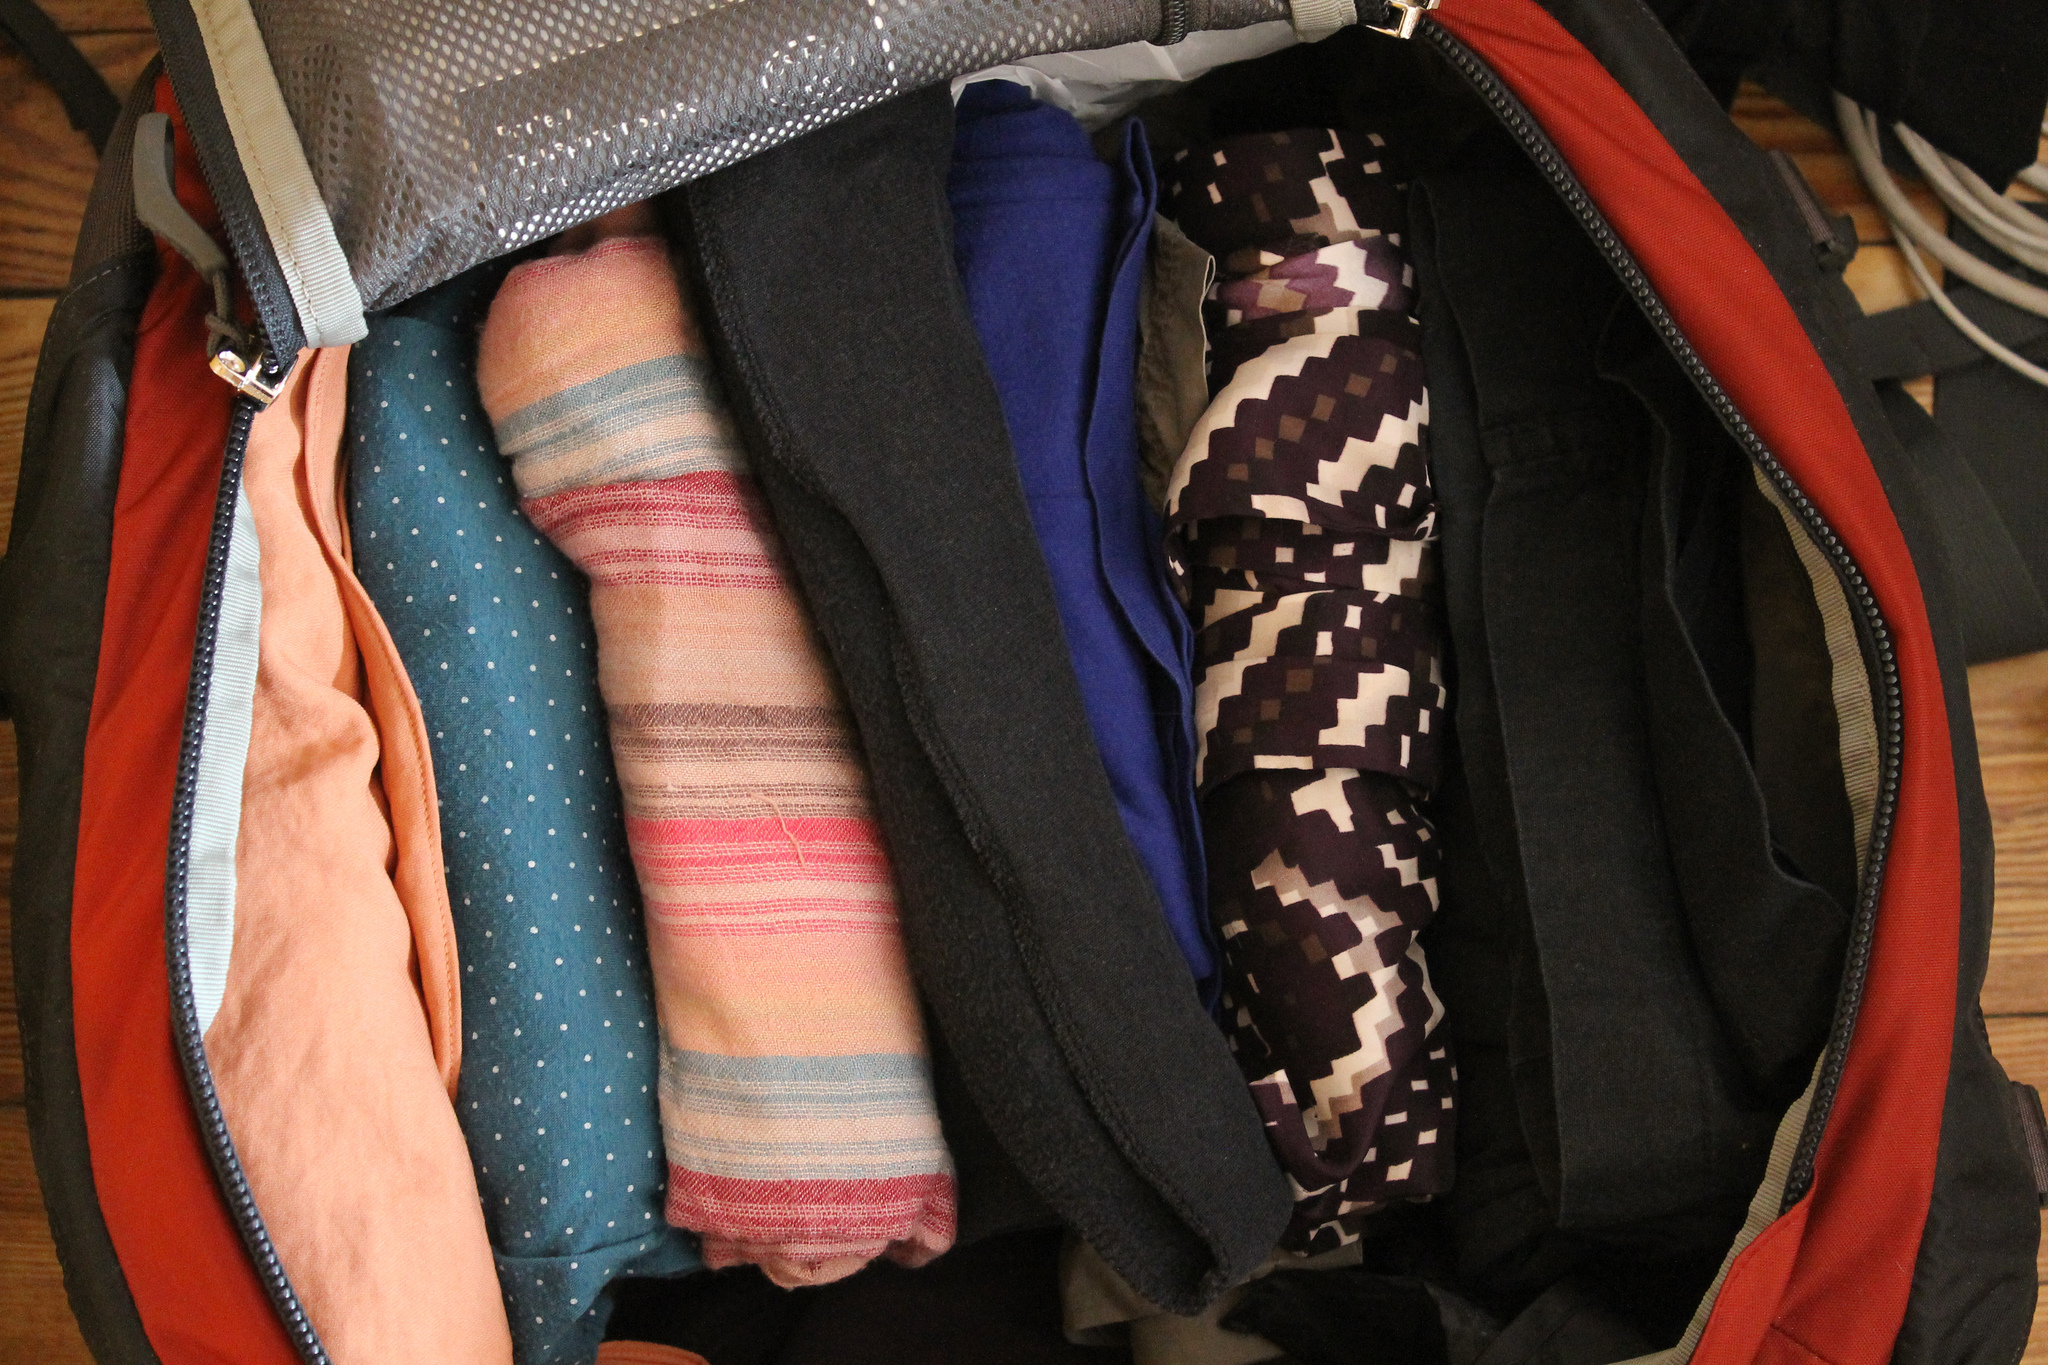 Roll your clothes - Your Packing Tips - The Trusted Traveller